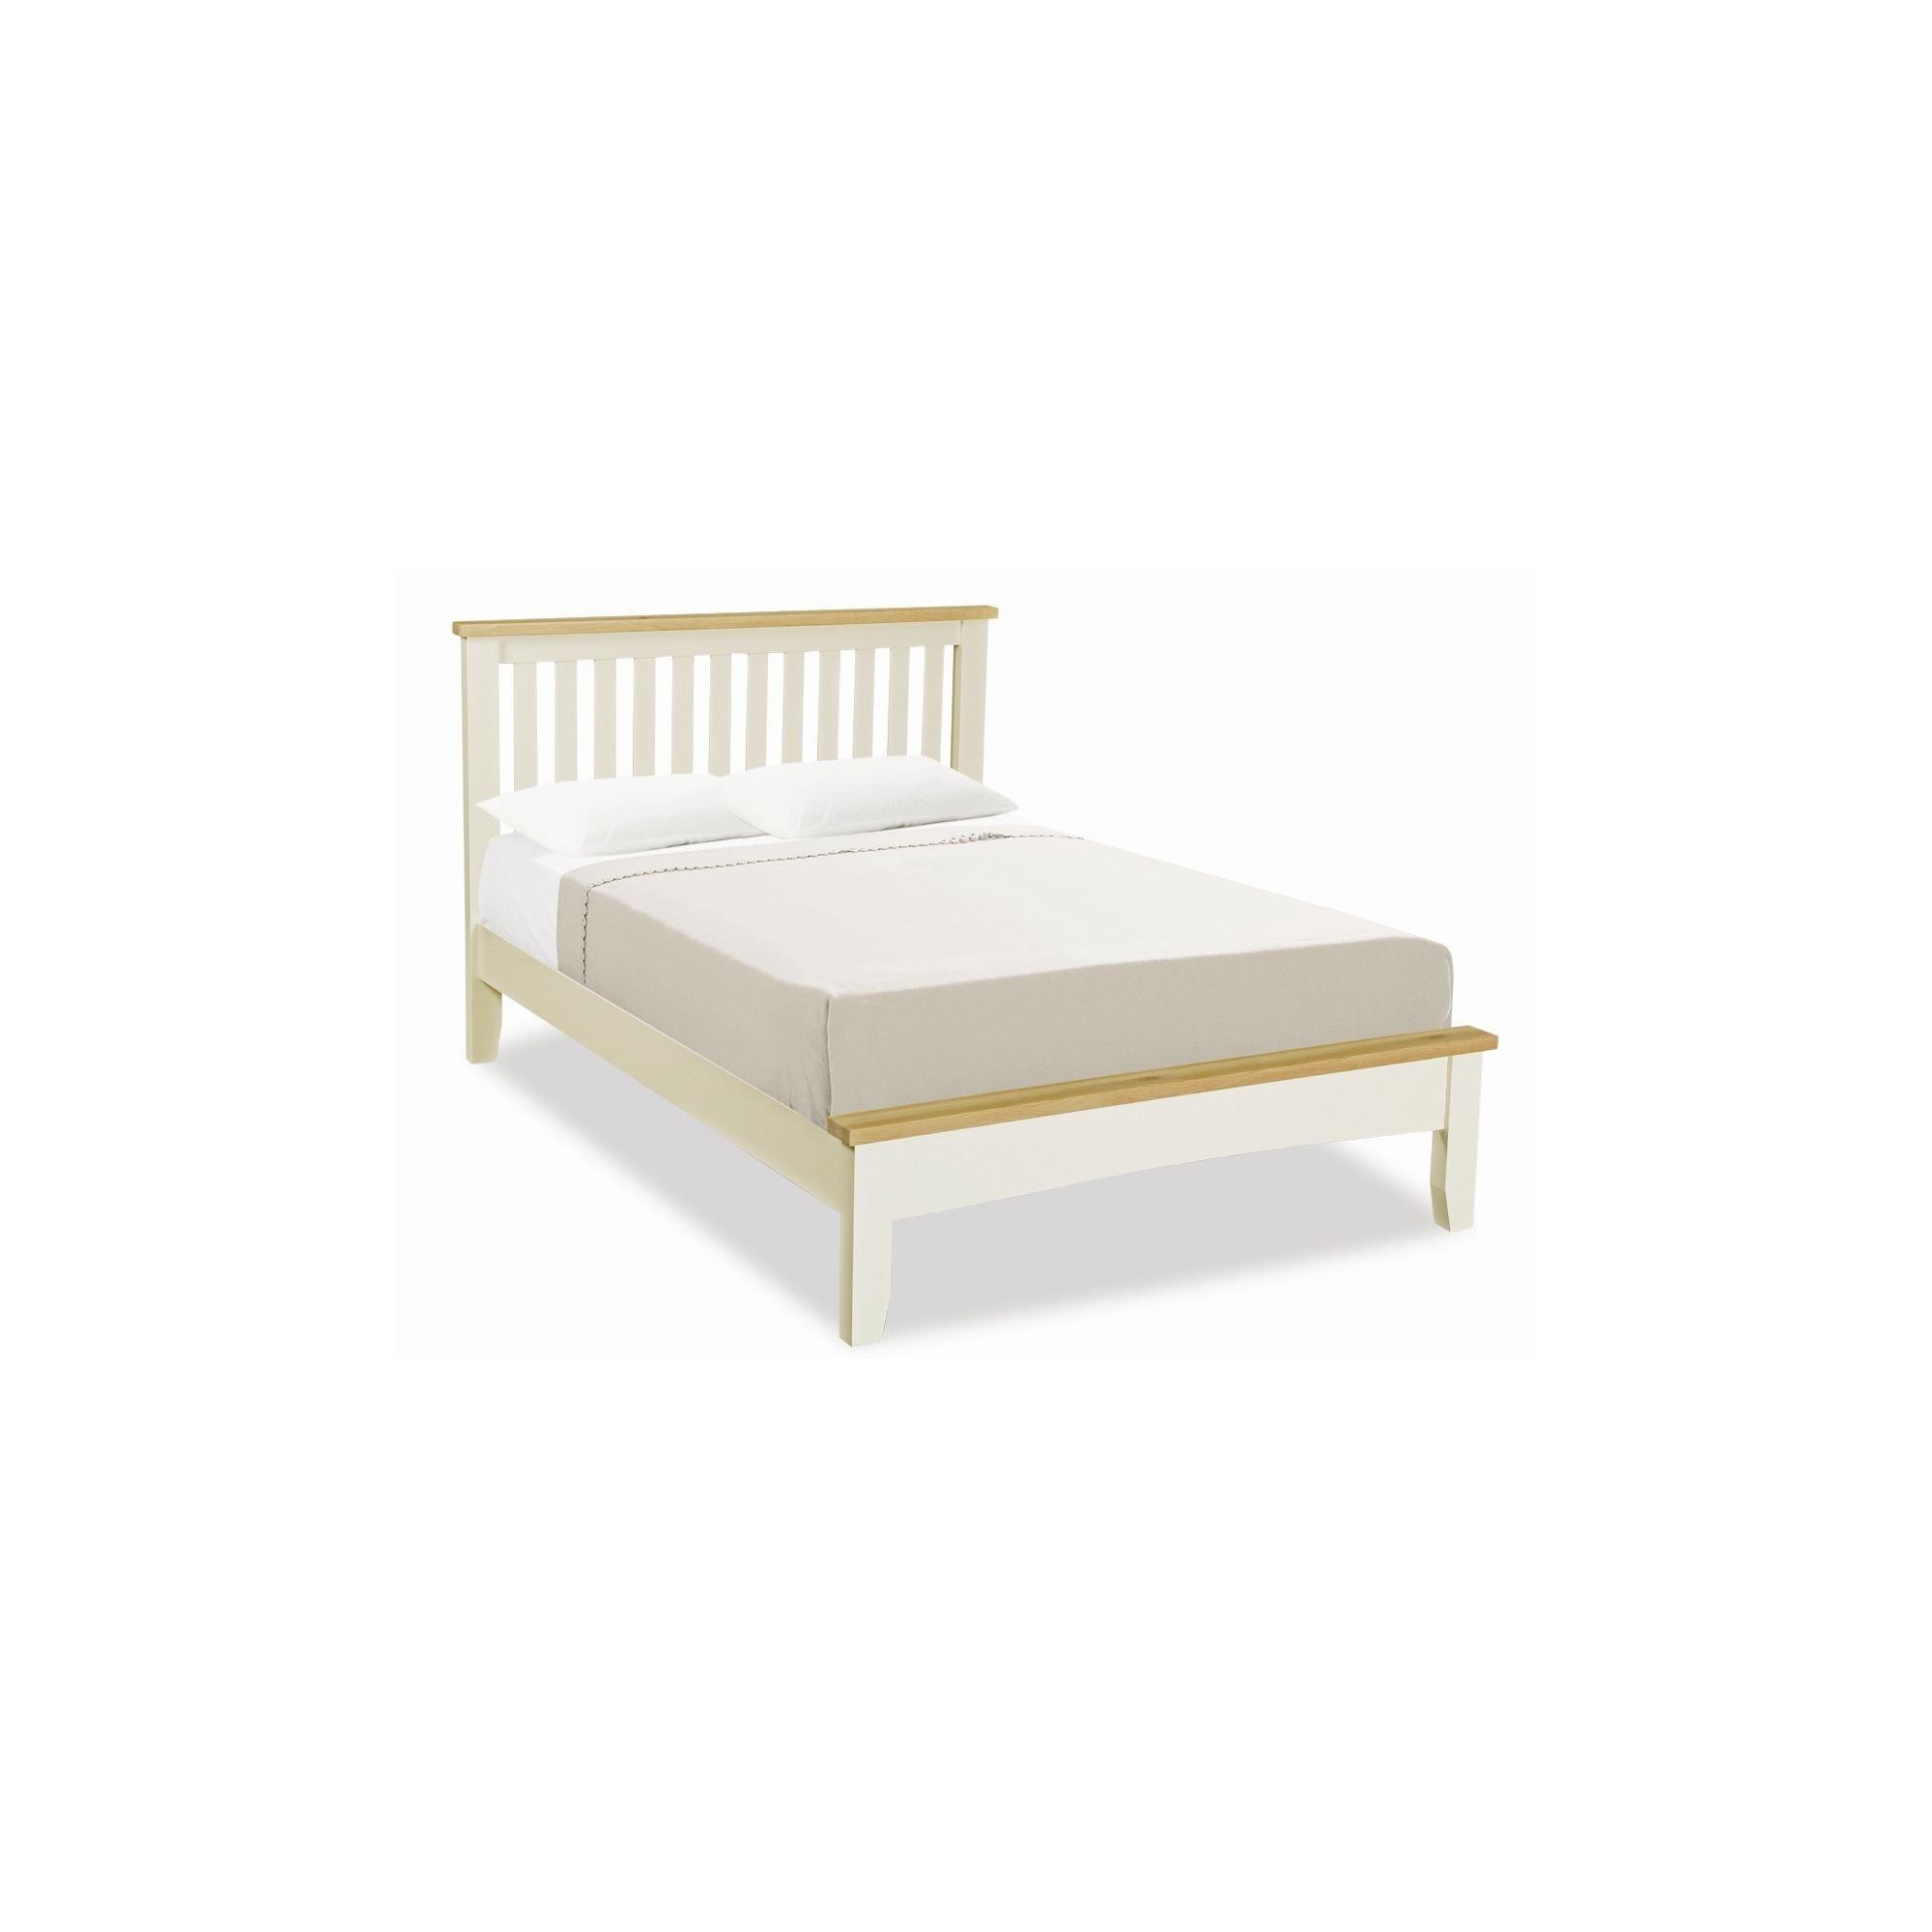 Alterton Furniture St. Ives Bed - Double at Tesco Direct